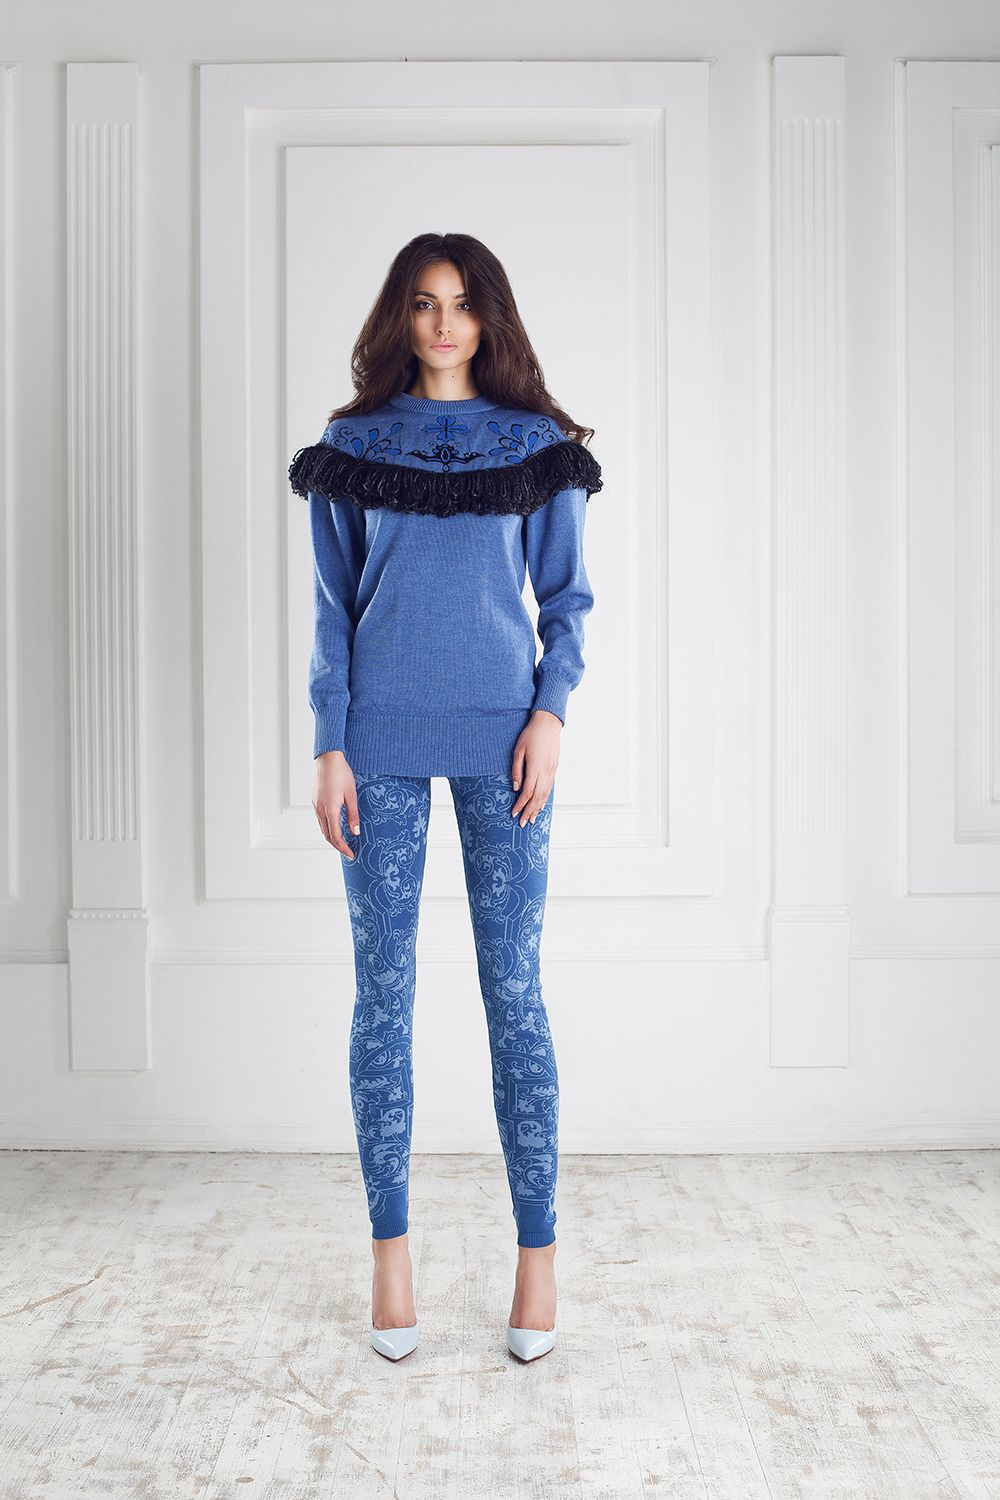 EK LONDON AW15/16 COLLECTION